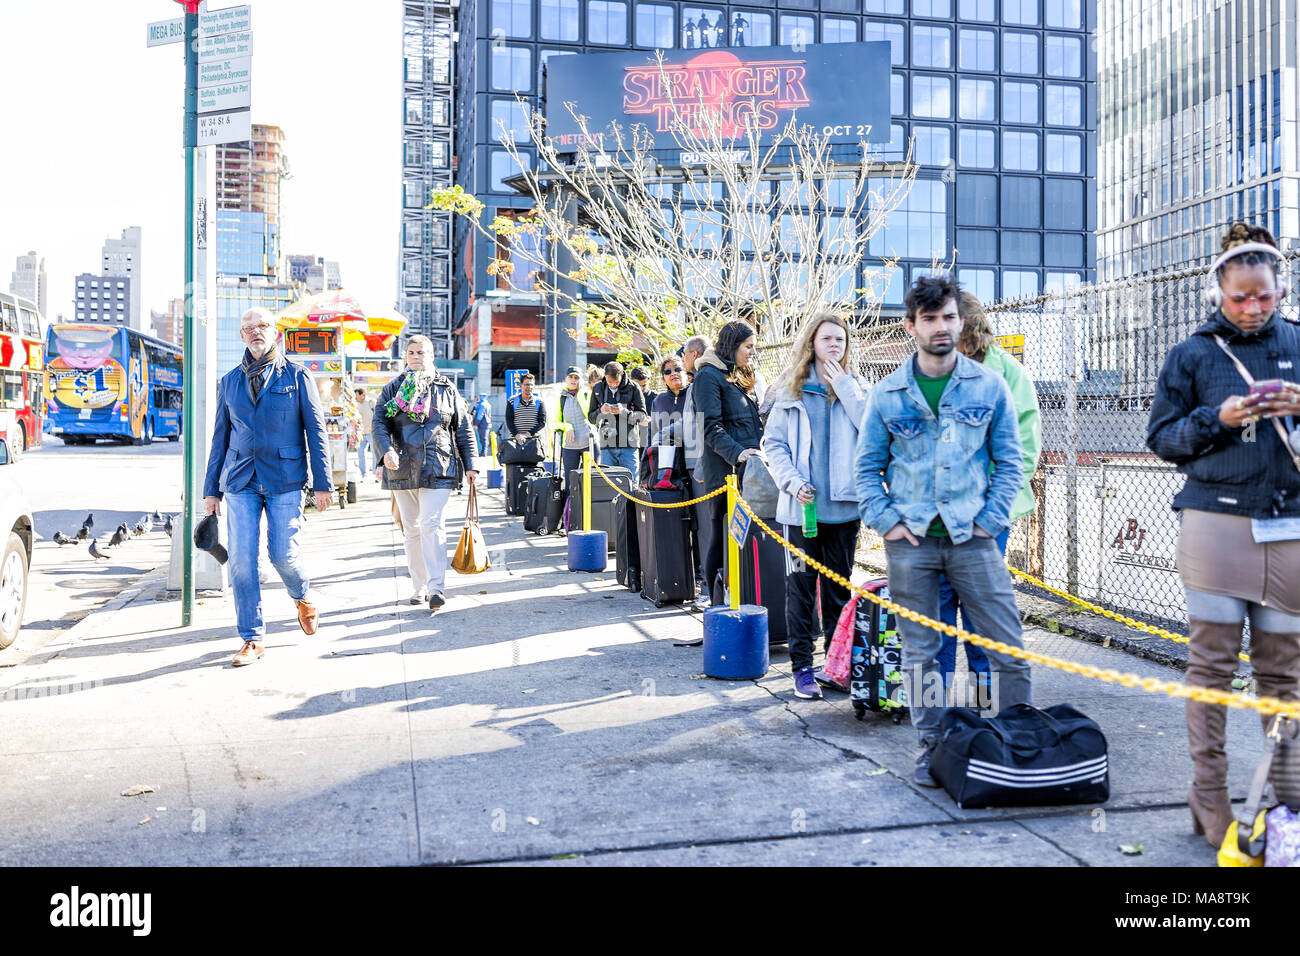 New York City, USA - October 30, 2017: People waiting by MegaBus sign in NYC Manhattan Hudson Yards for buses line queue, sidewalk Stock Photo